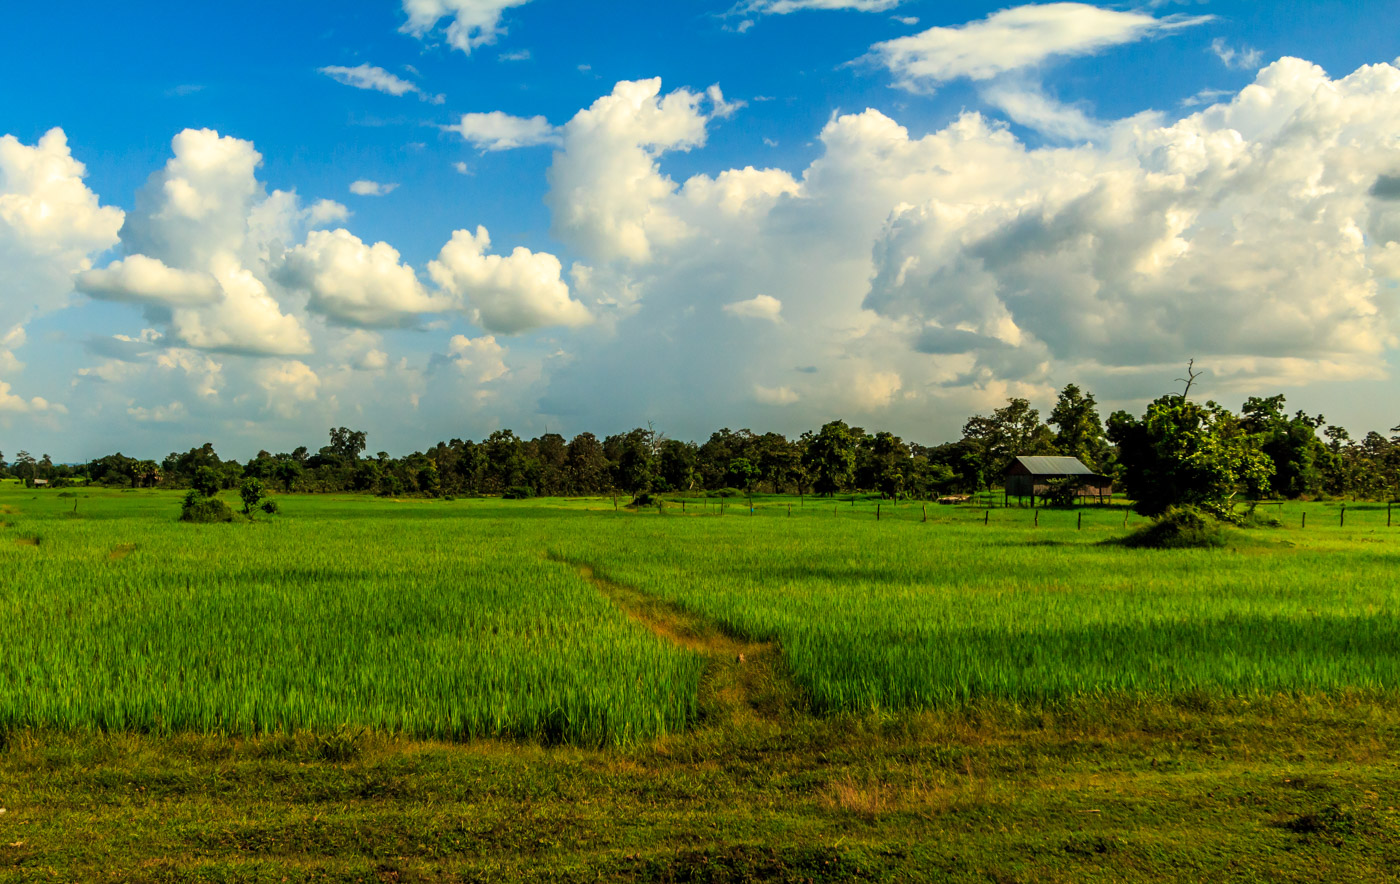 The Stung Treng countryside.